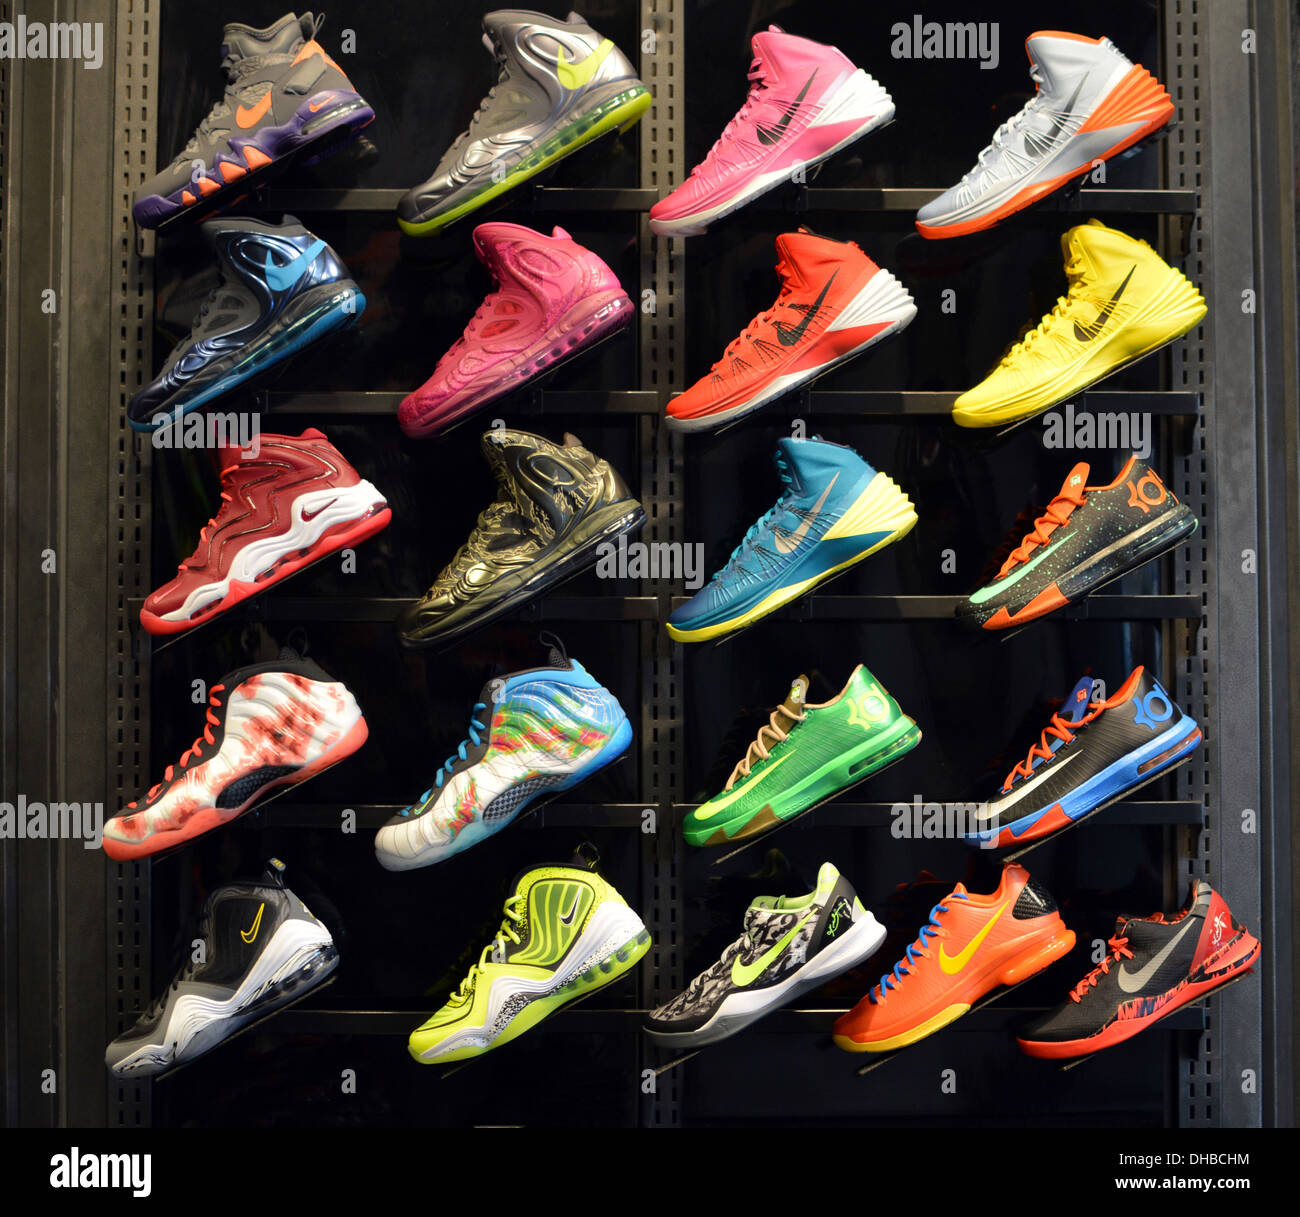 colorful s athletic shoes for sale at a foot locker